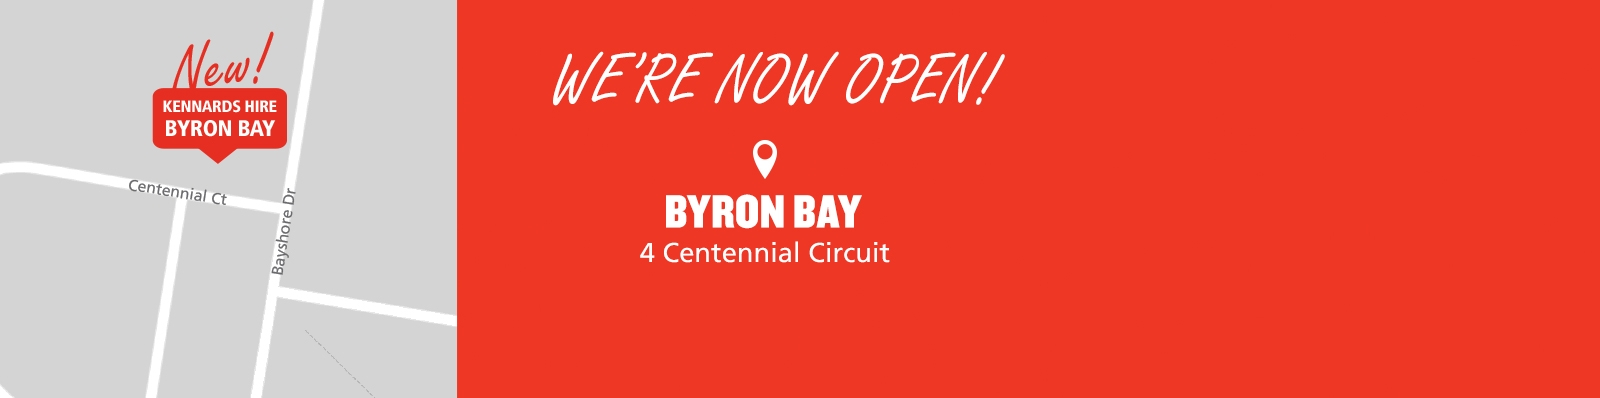 Check out our new Byron Bay branch!